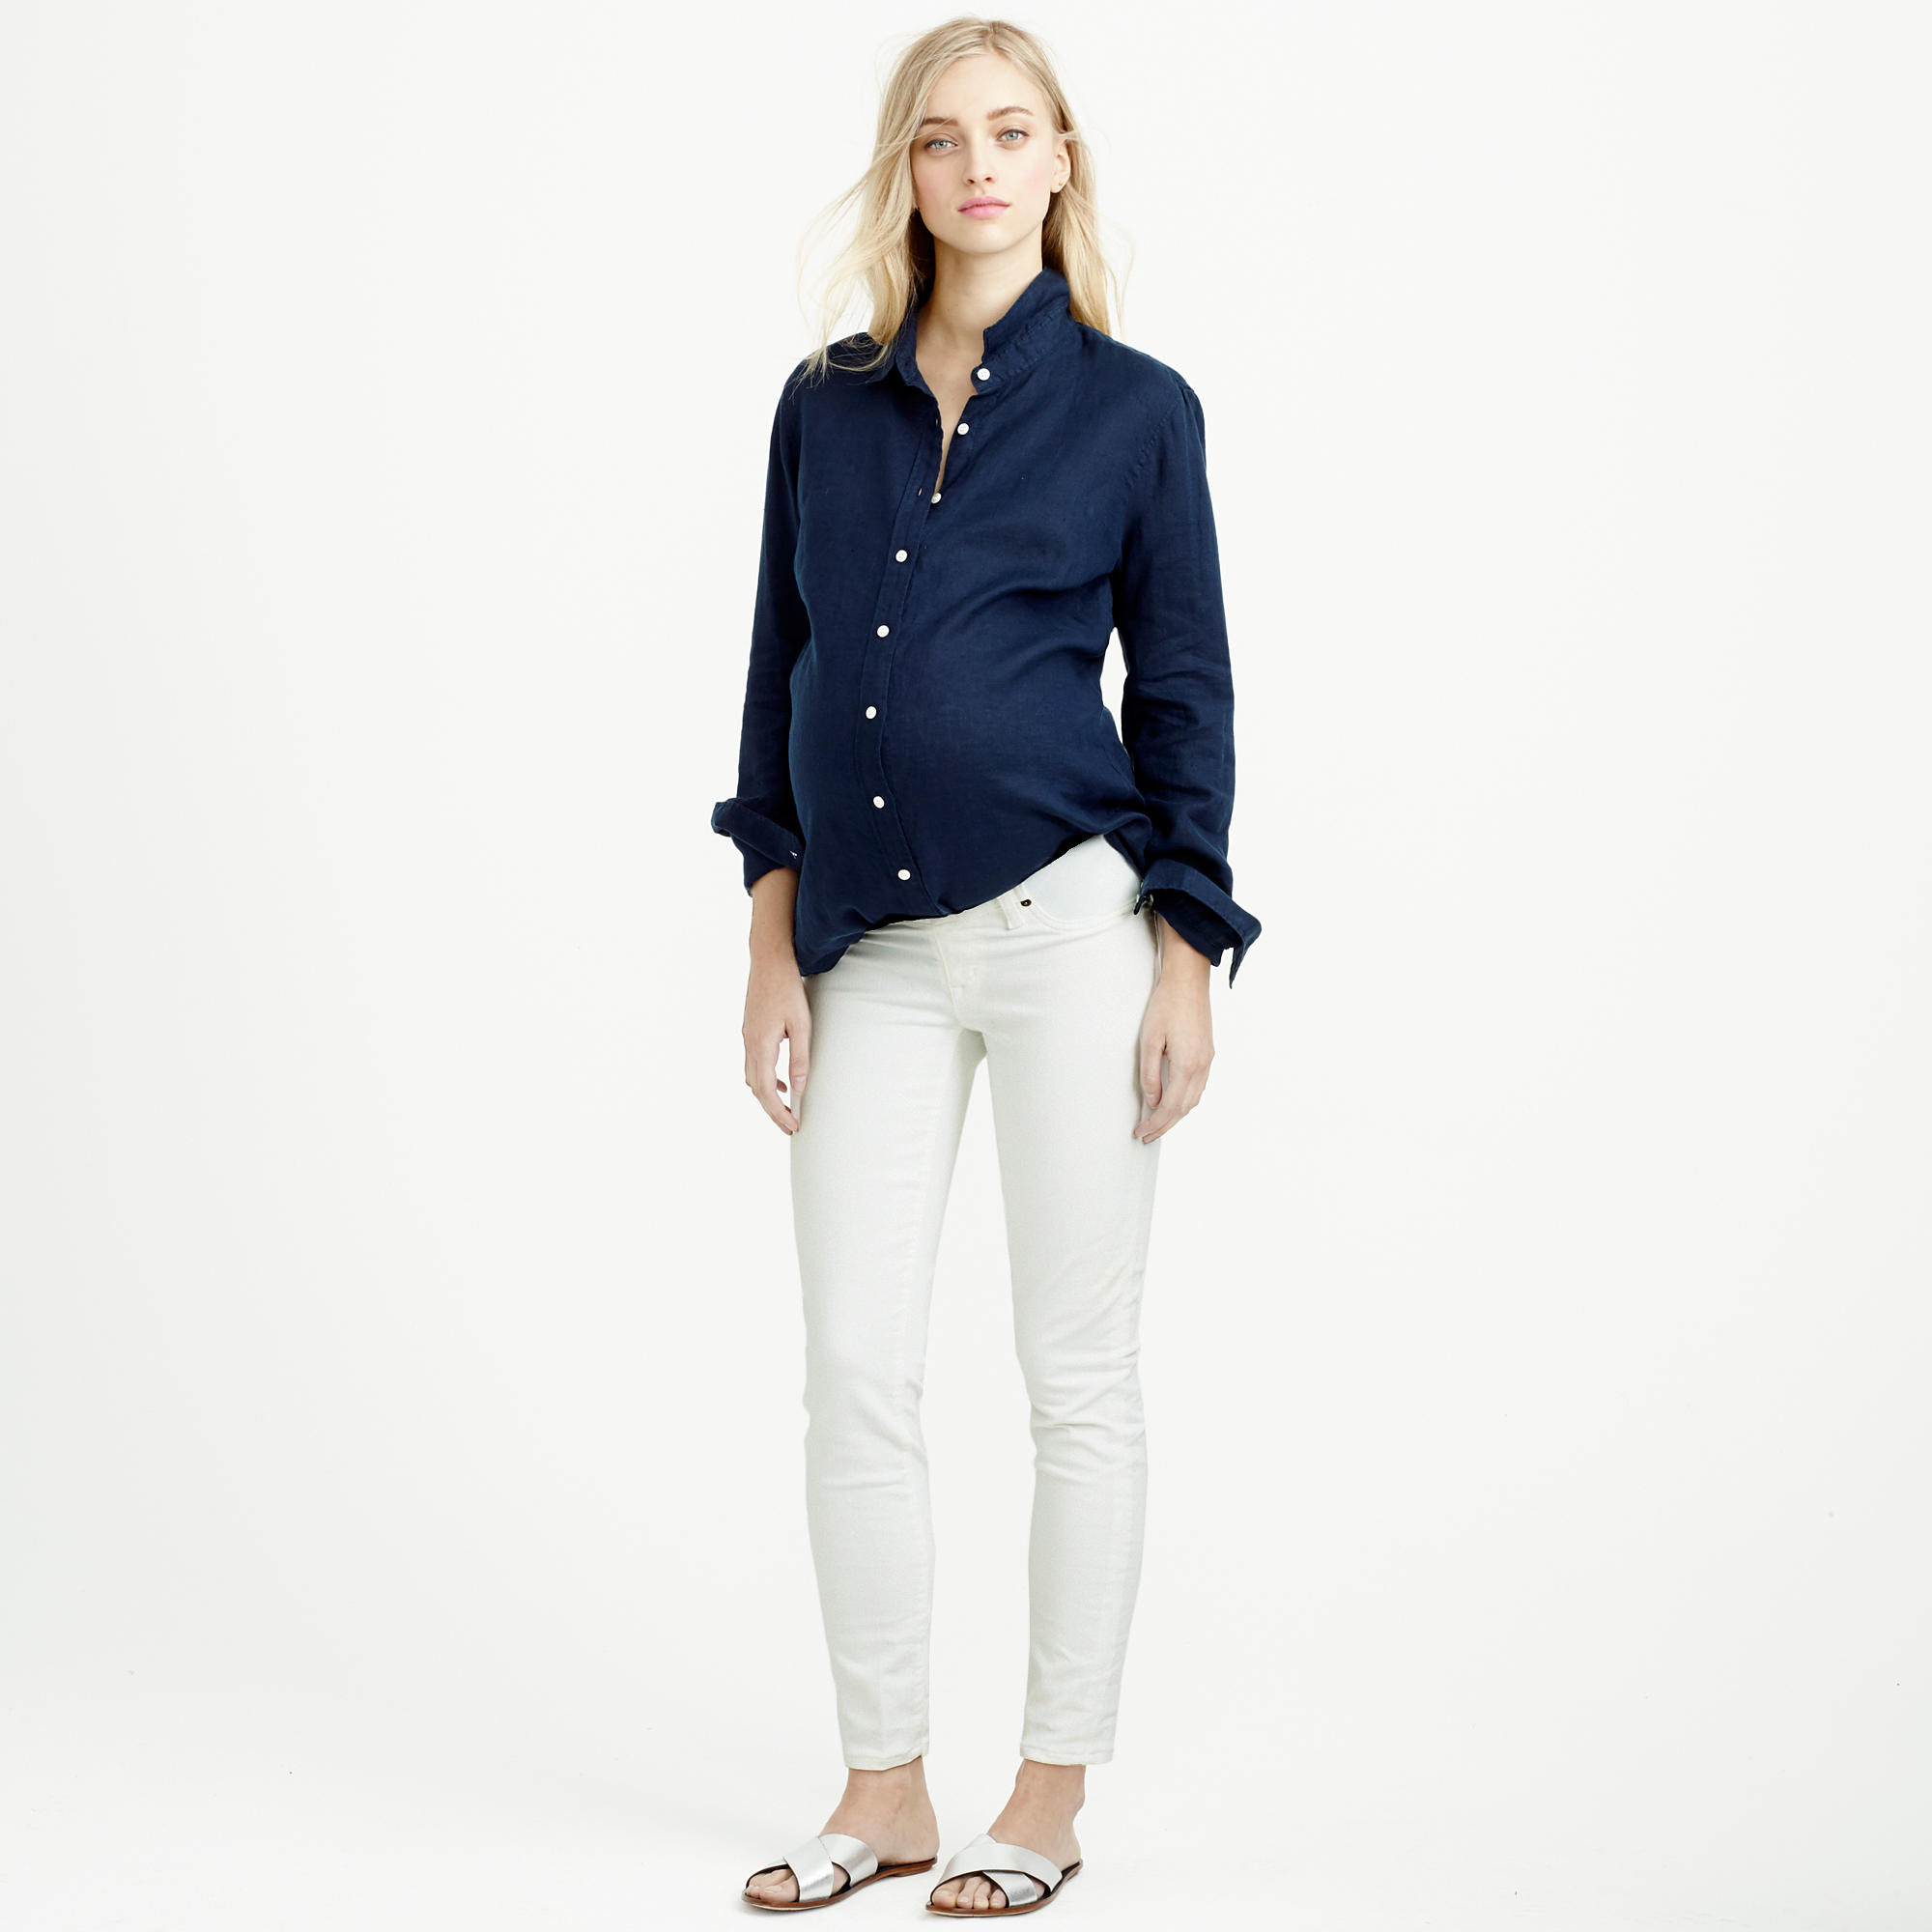 a2a14f88d06a7 J.Crew Petite Maternity Pull-on Toothpick Jean In Chalk in White - Lyst